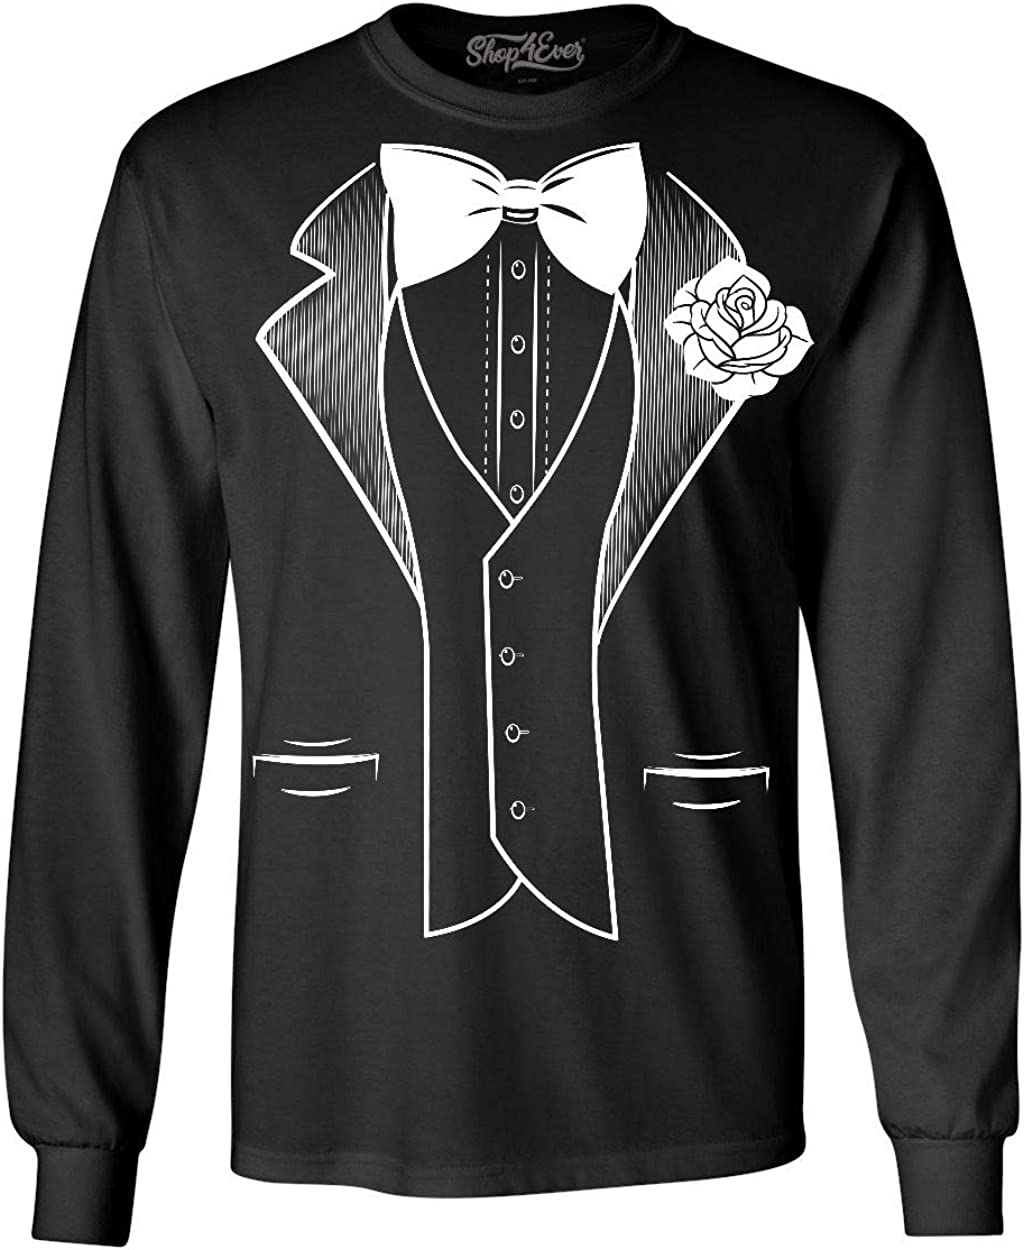 Classic Tuxedo Costume with White Rose Women/'s T-Shirt Funny Suit Shirts